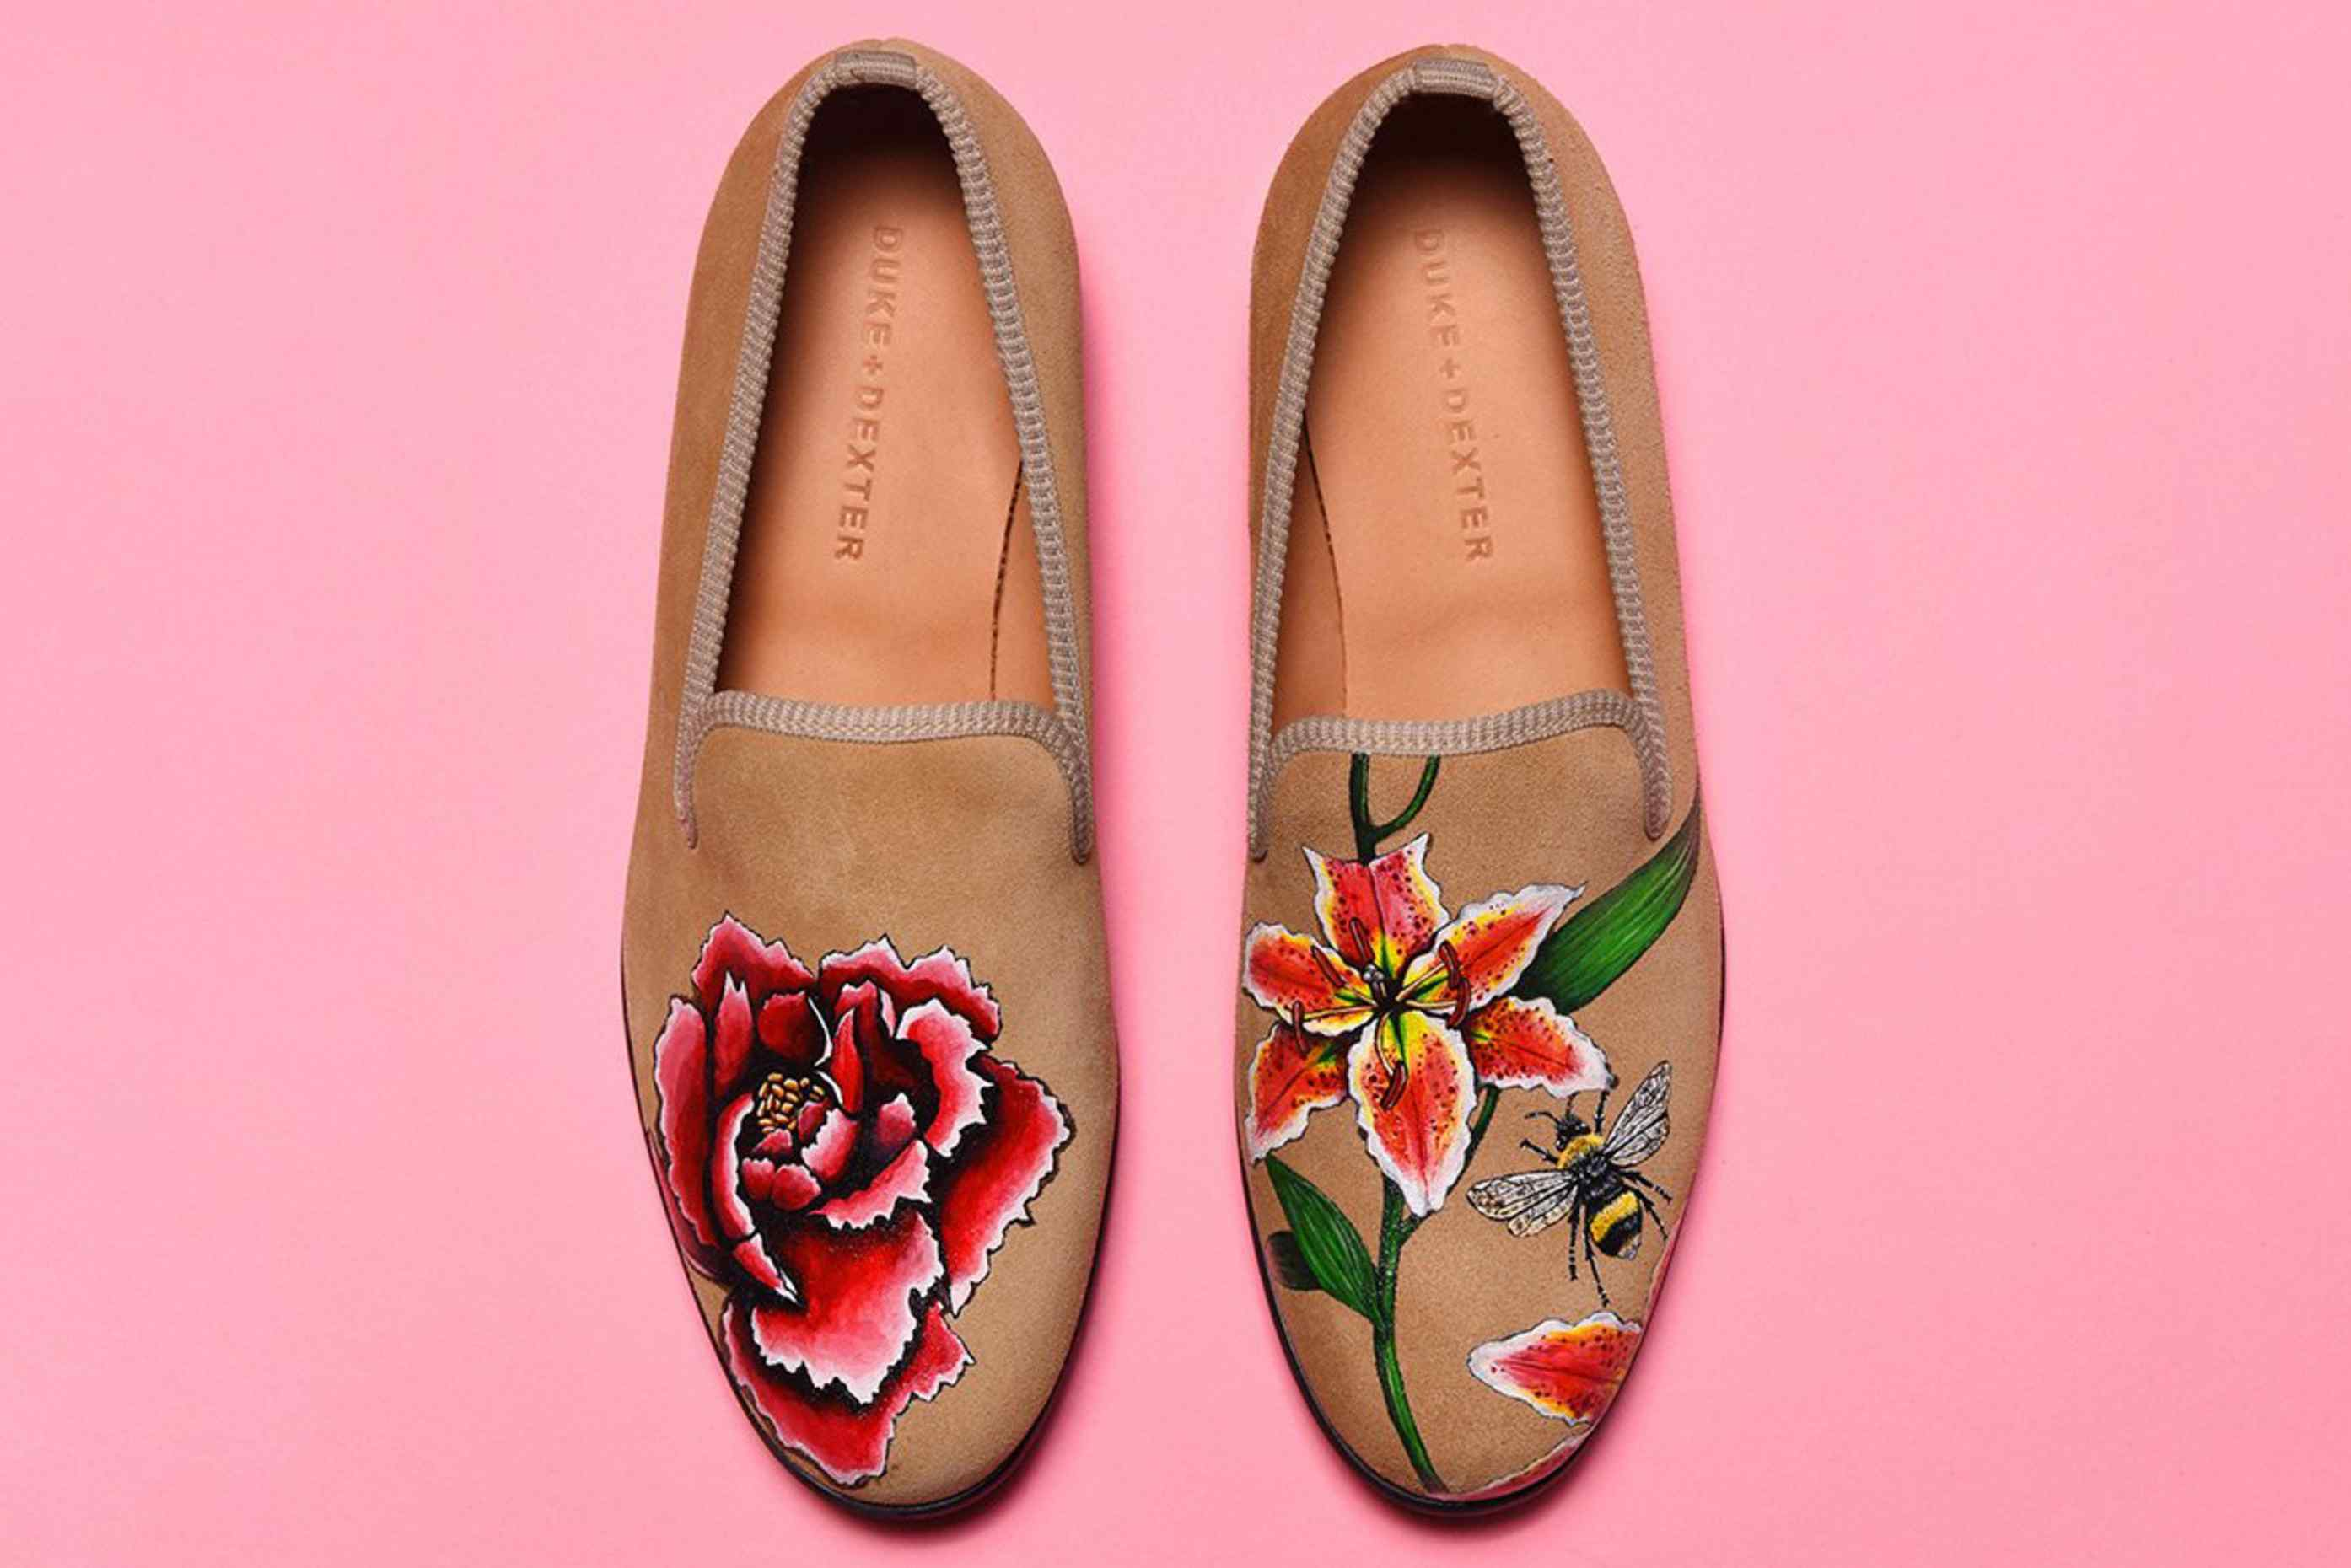 Discover Duke Dexter Exclusive Hand Painted Shoes – Design Limited Edition